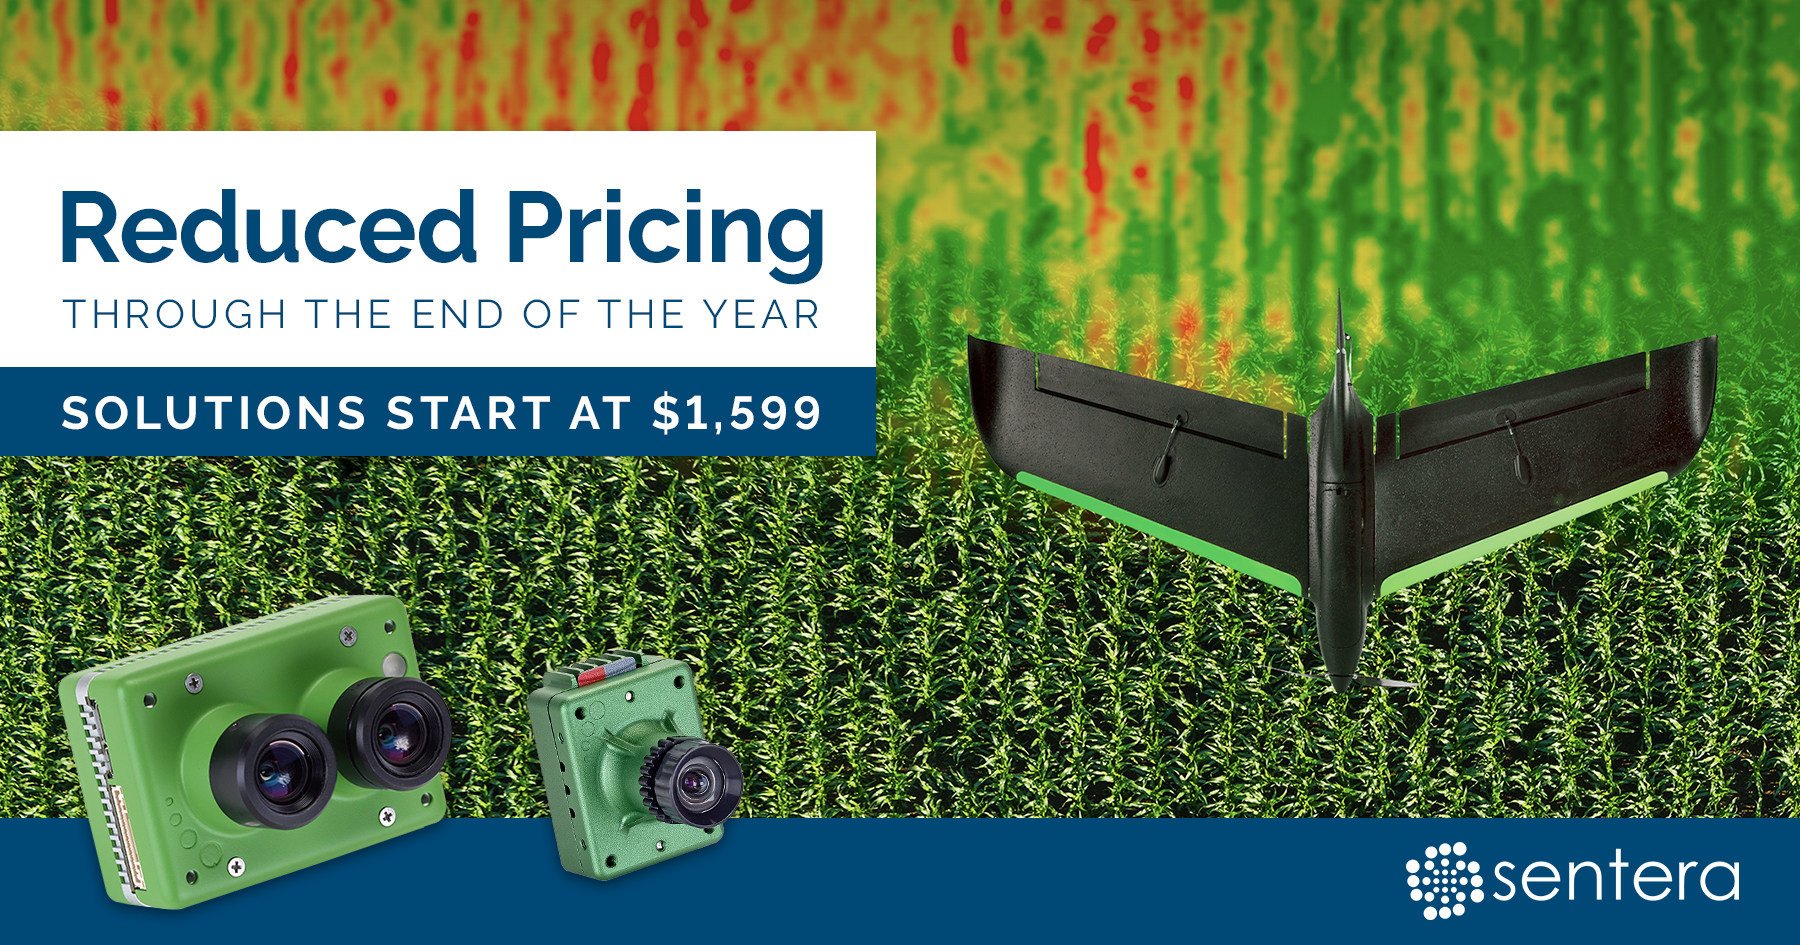 Sentera announces precision ag solution price promotion, with $600 or more off the industry leading sensors through the end of 2018.